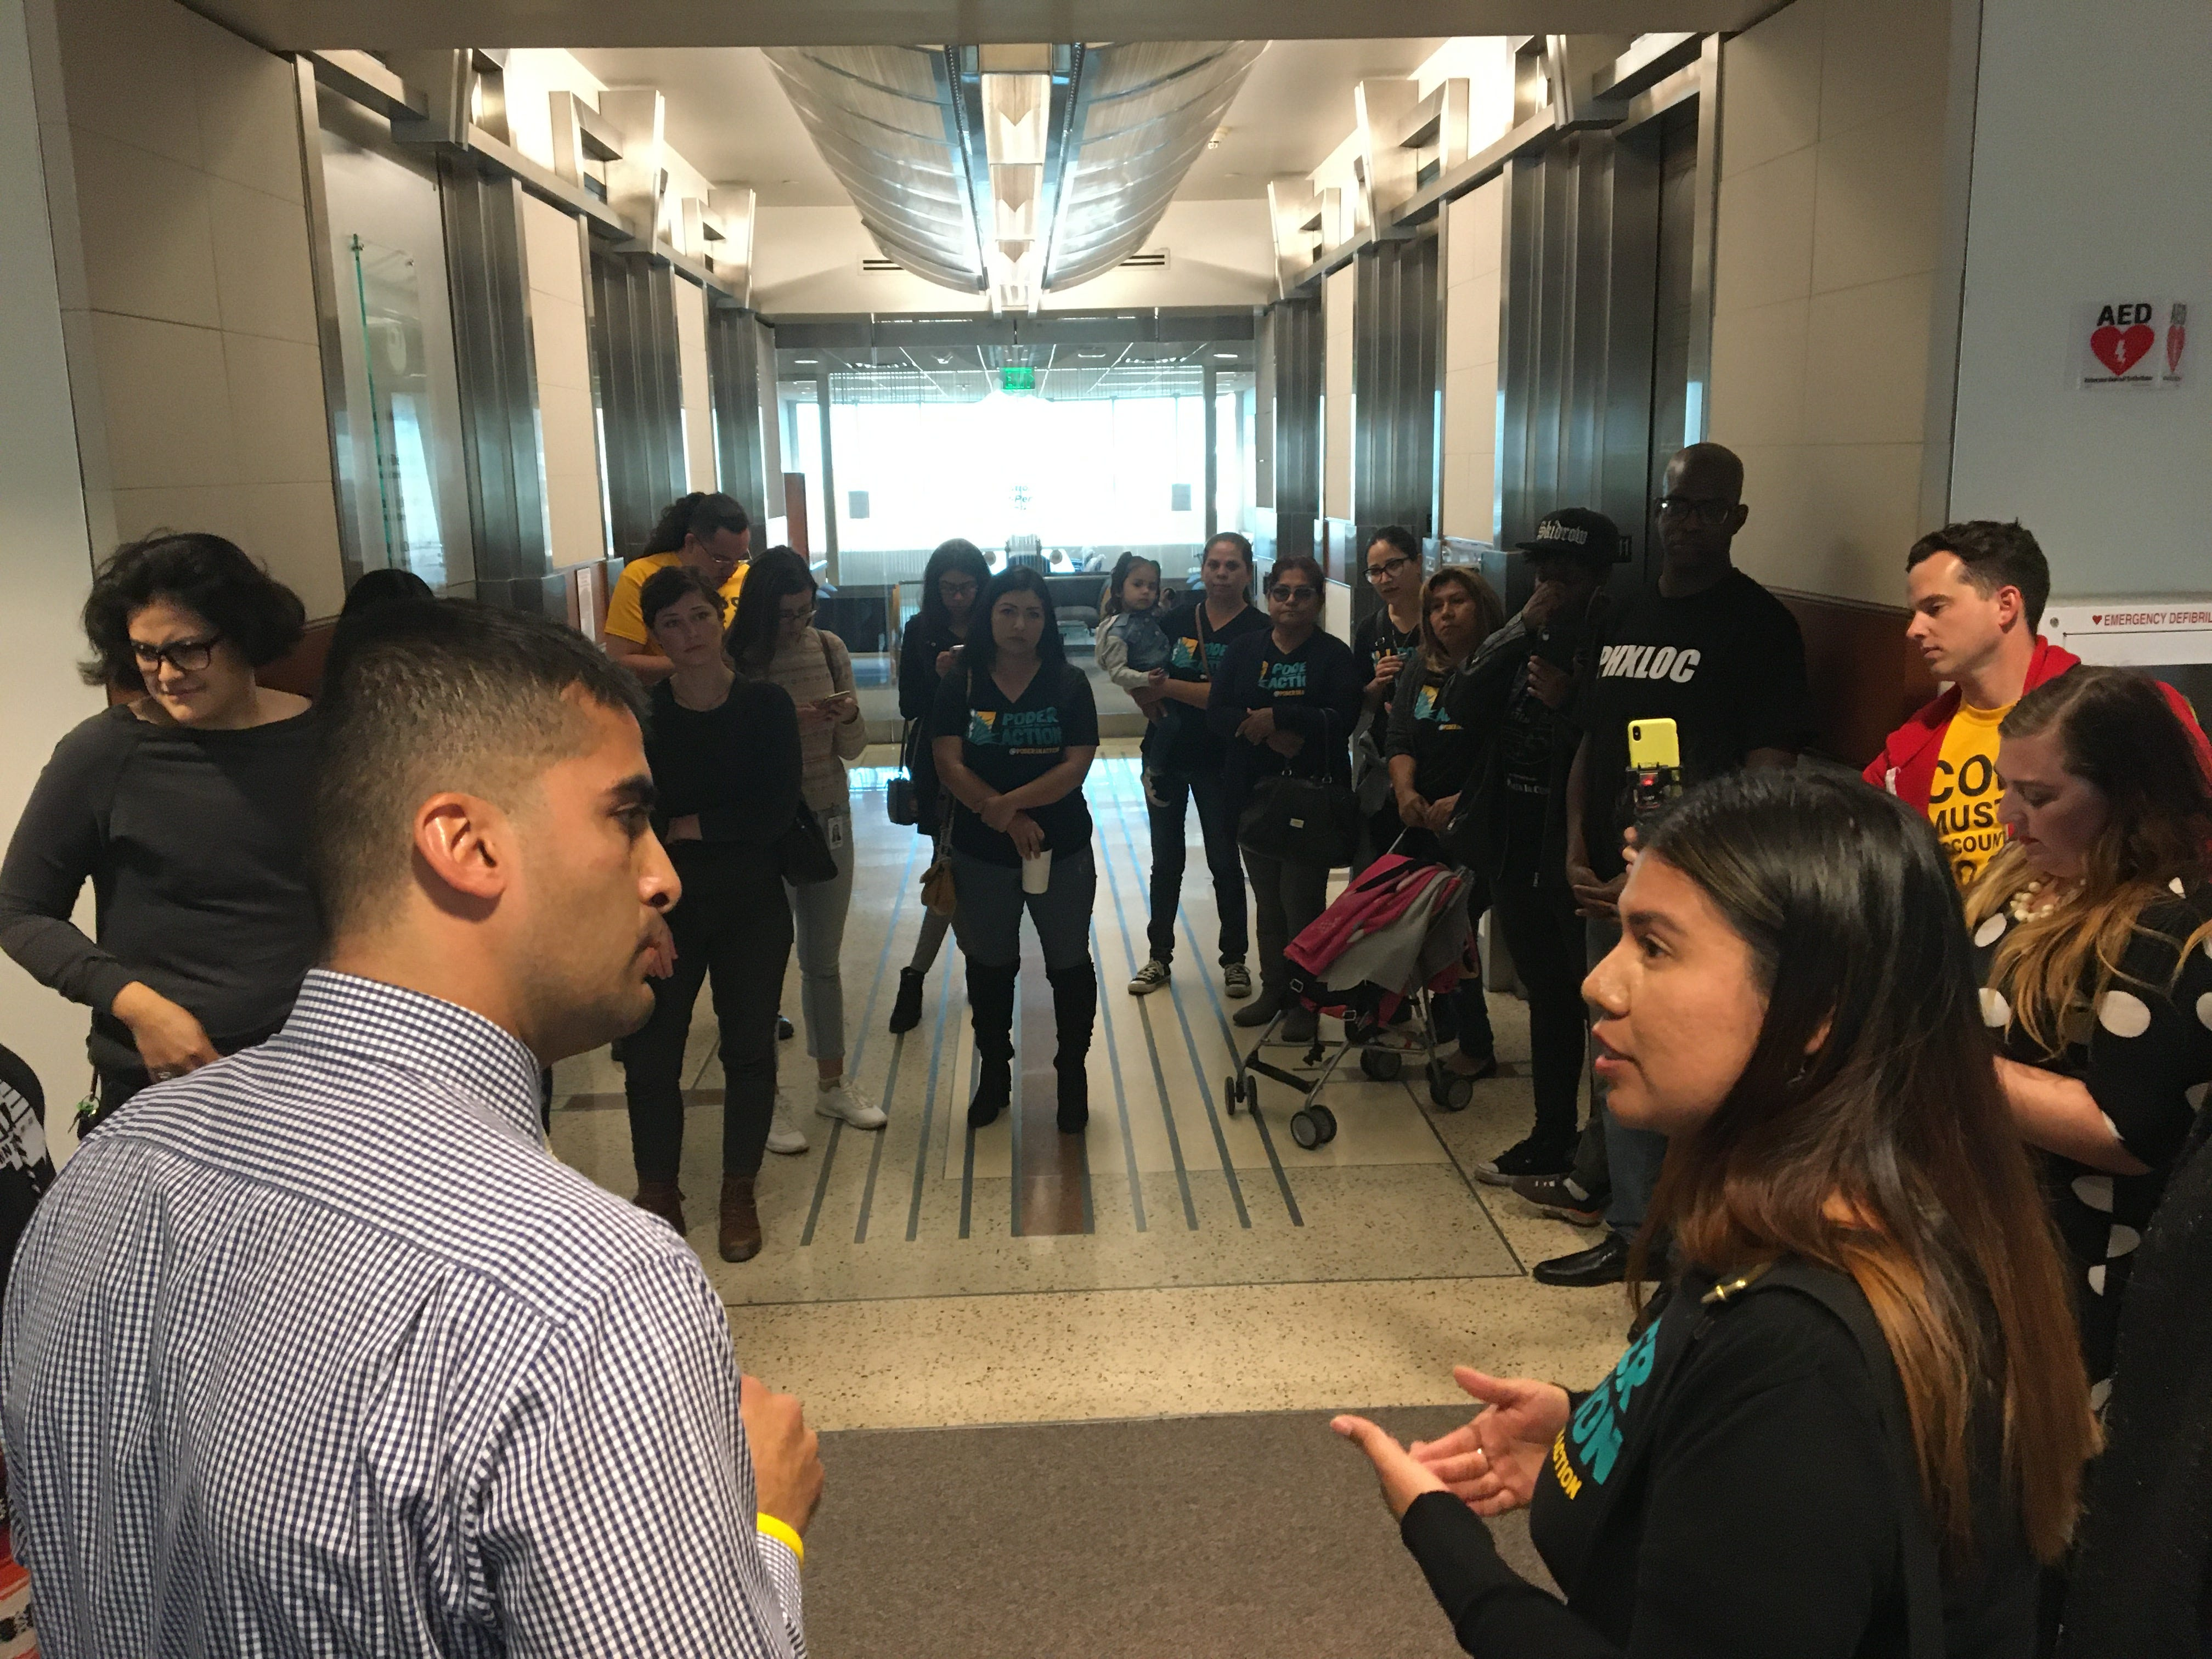 Activists hold conference at City Hall day before policing policies vote